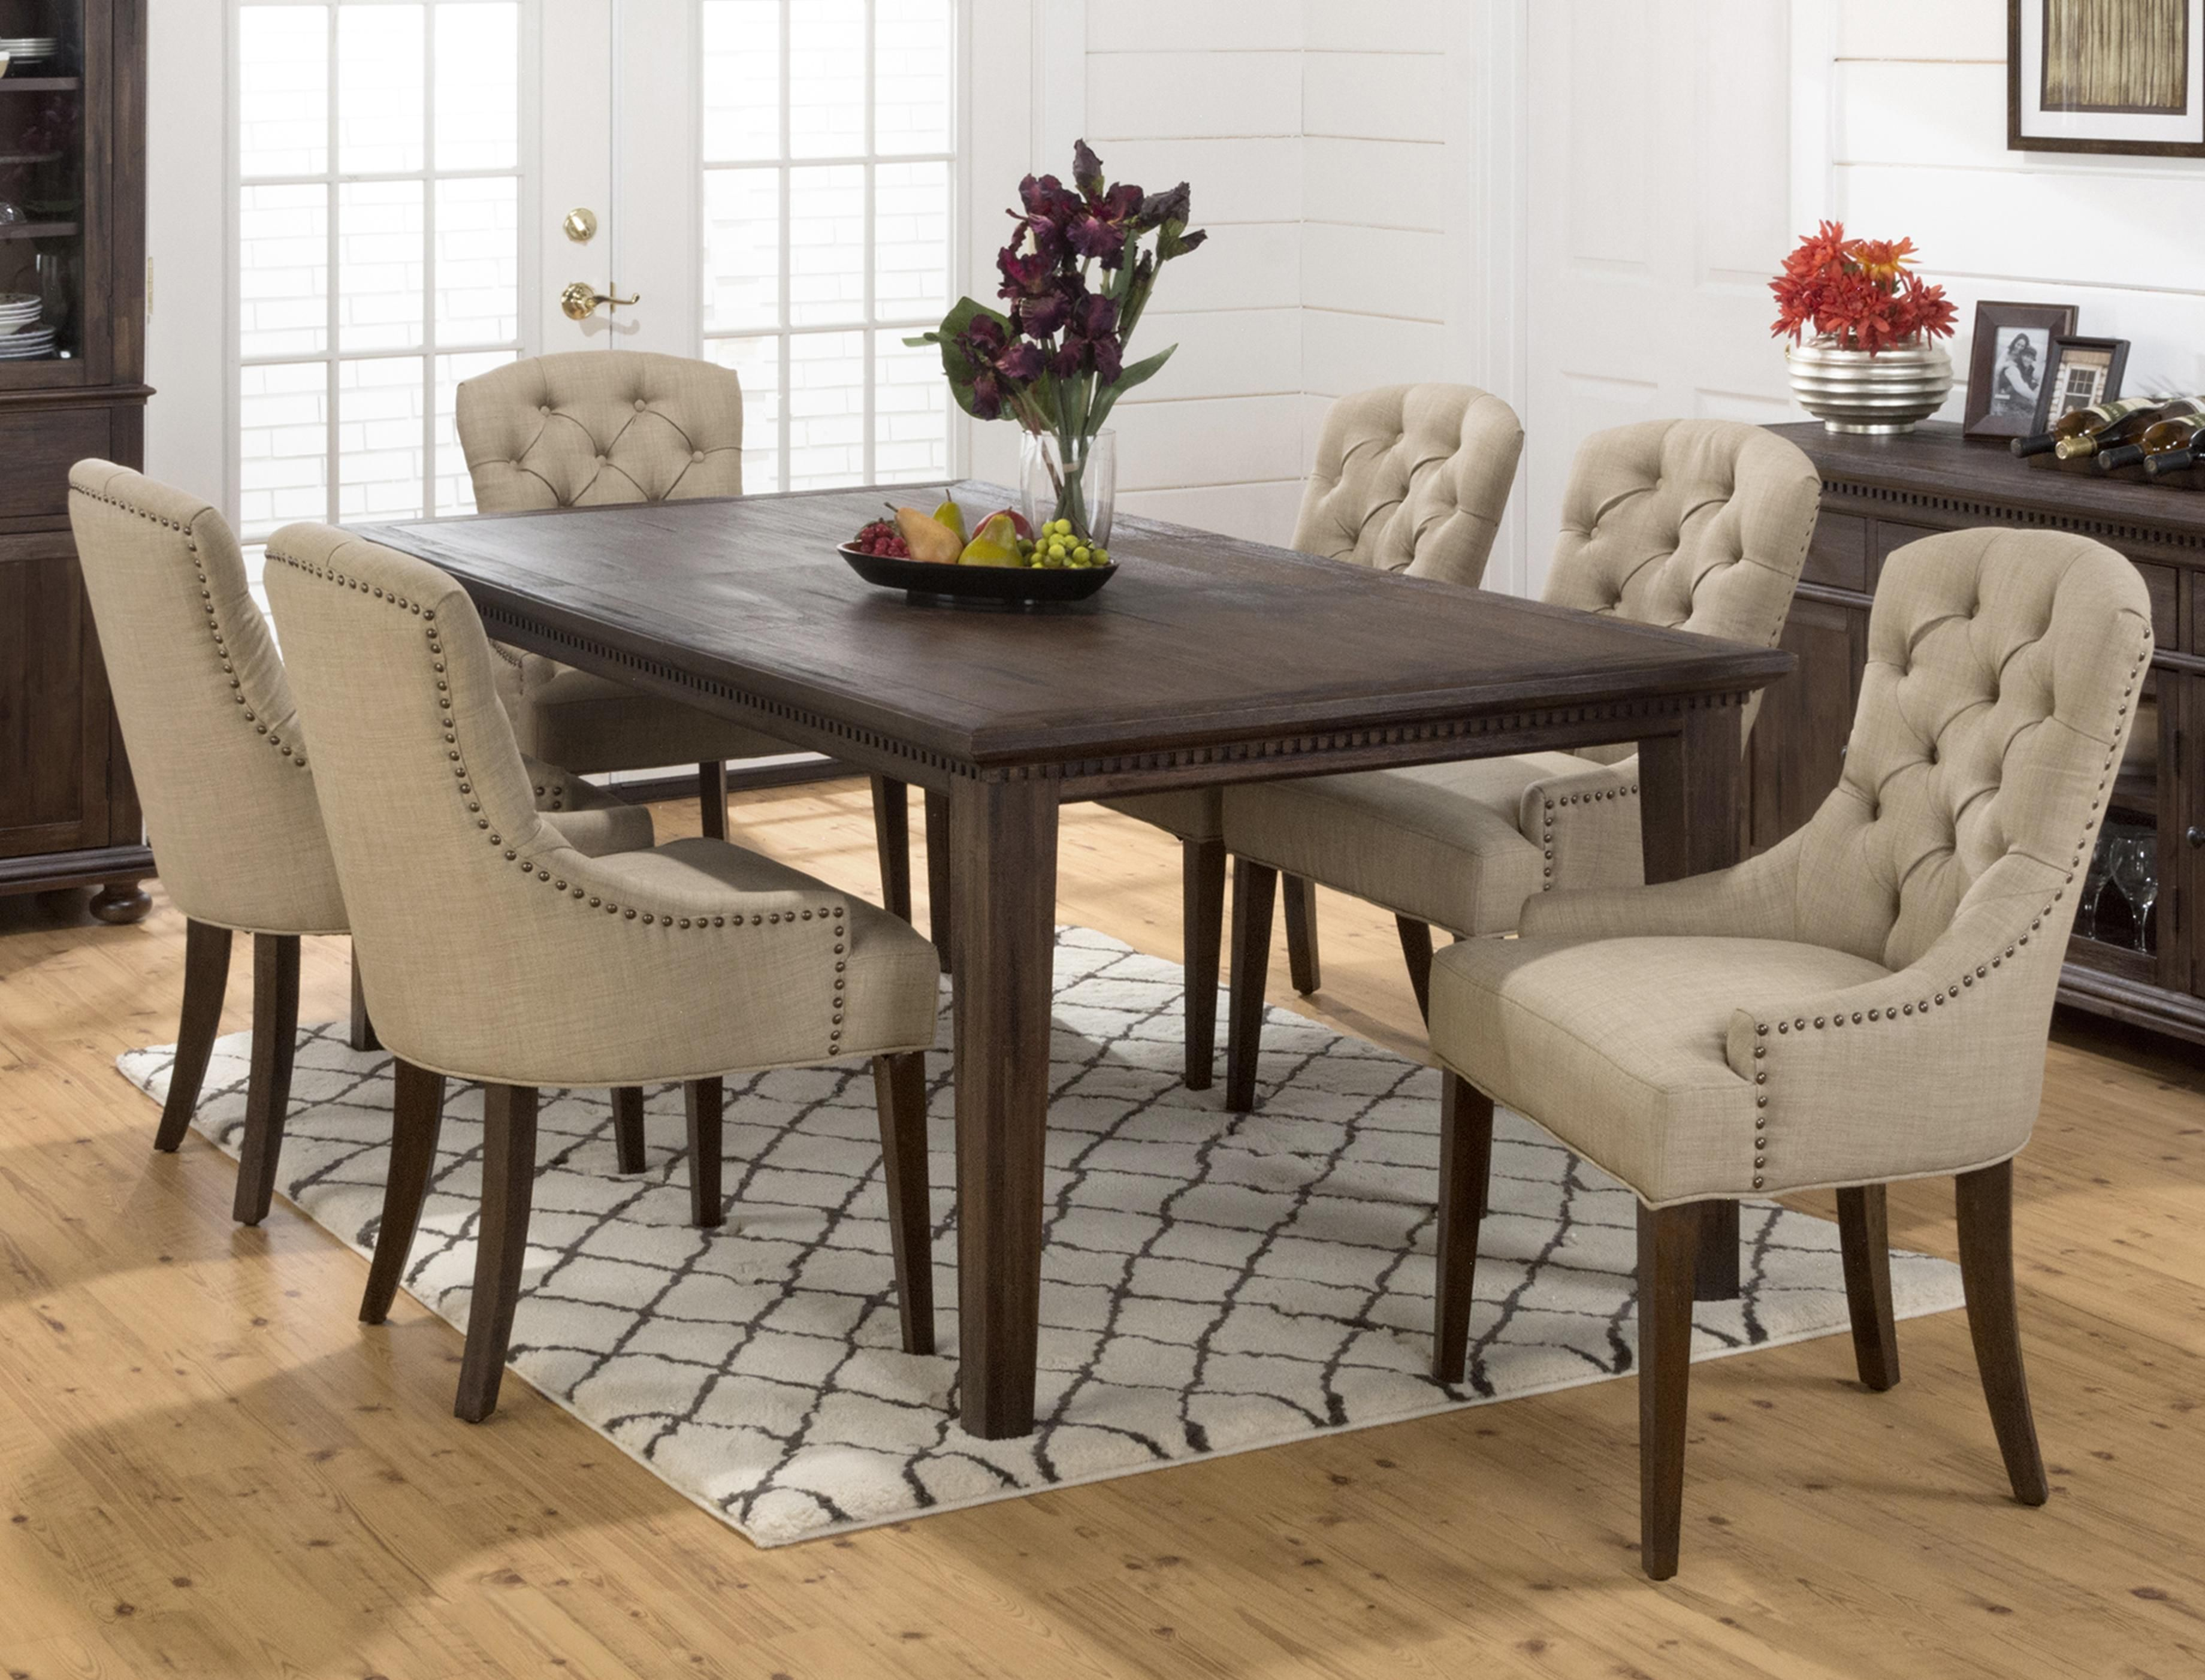 27 How To Use Upholstered Chairs For Dining Room Decoration To Look Inviting Brown Dining Room Set Dining Room Sets Tufted Dining Room Chair Fabric chairs for kitchen table